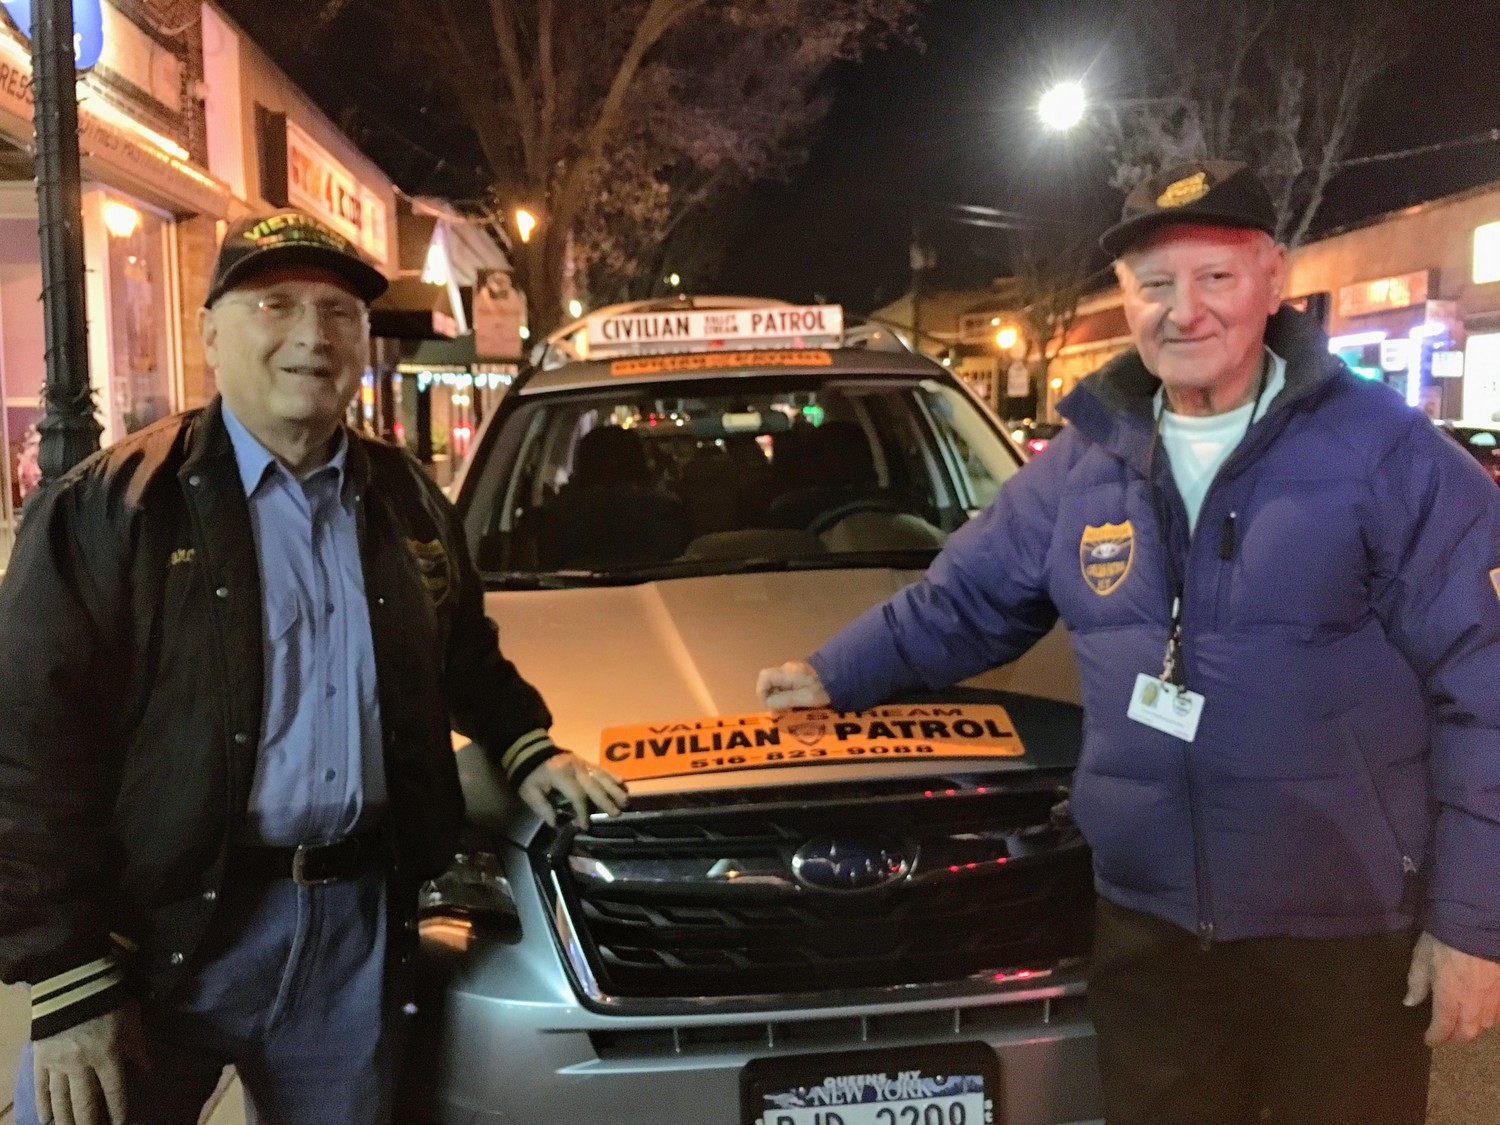 George Catalanotto and Ralph Polverino, above, are the treasurer and president of the Valley Stream Civilian Patrol, respectively.